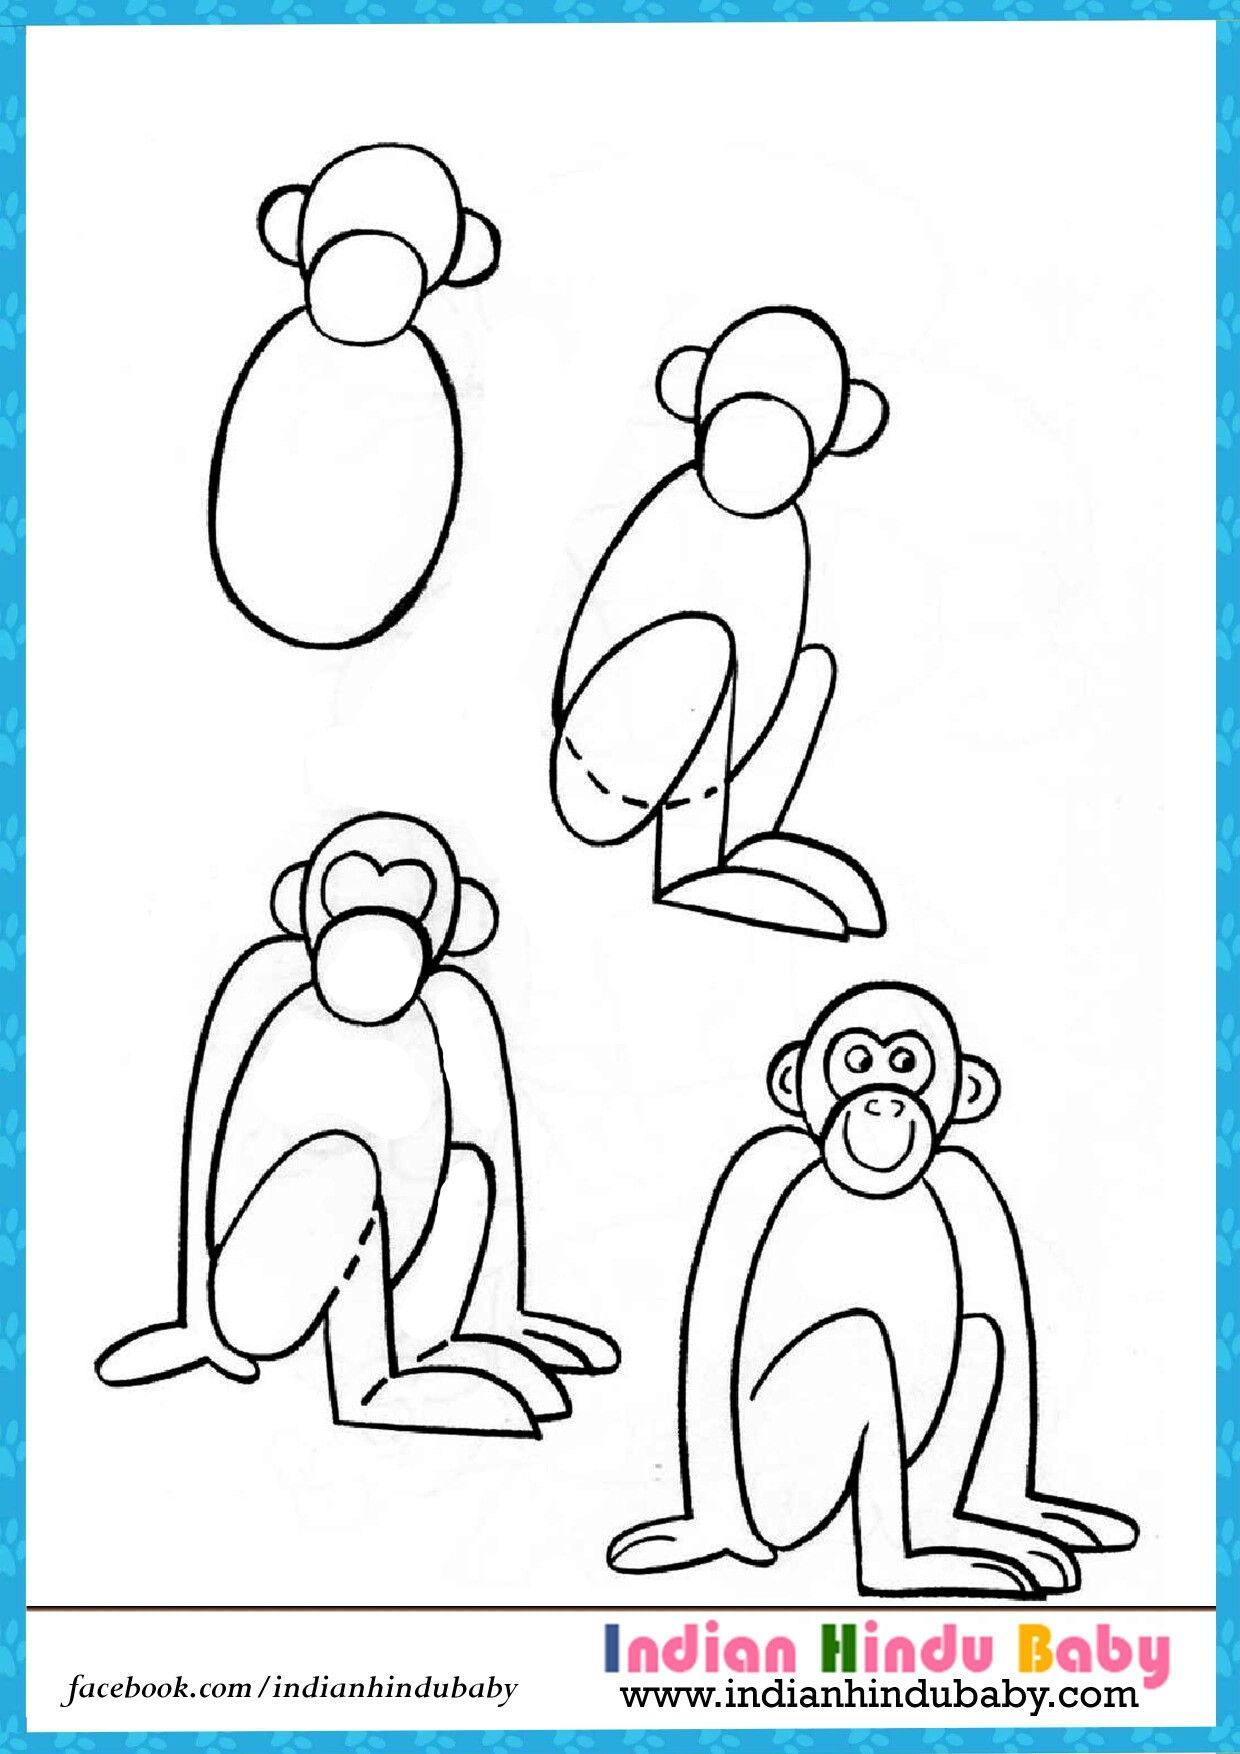 teach your kid to draw monkey with simple drawing tips https - Kids Simple Drawing